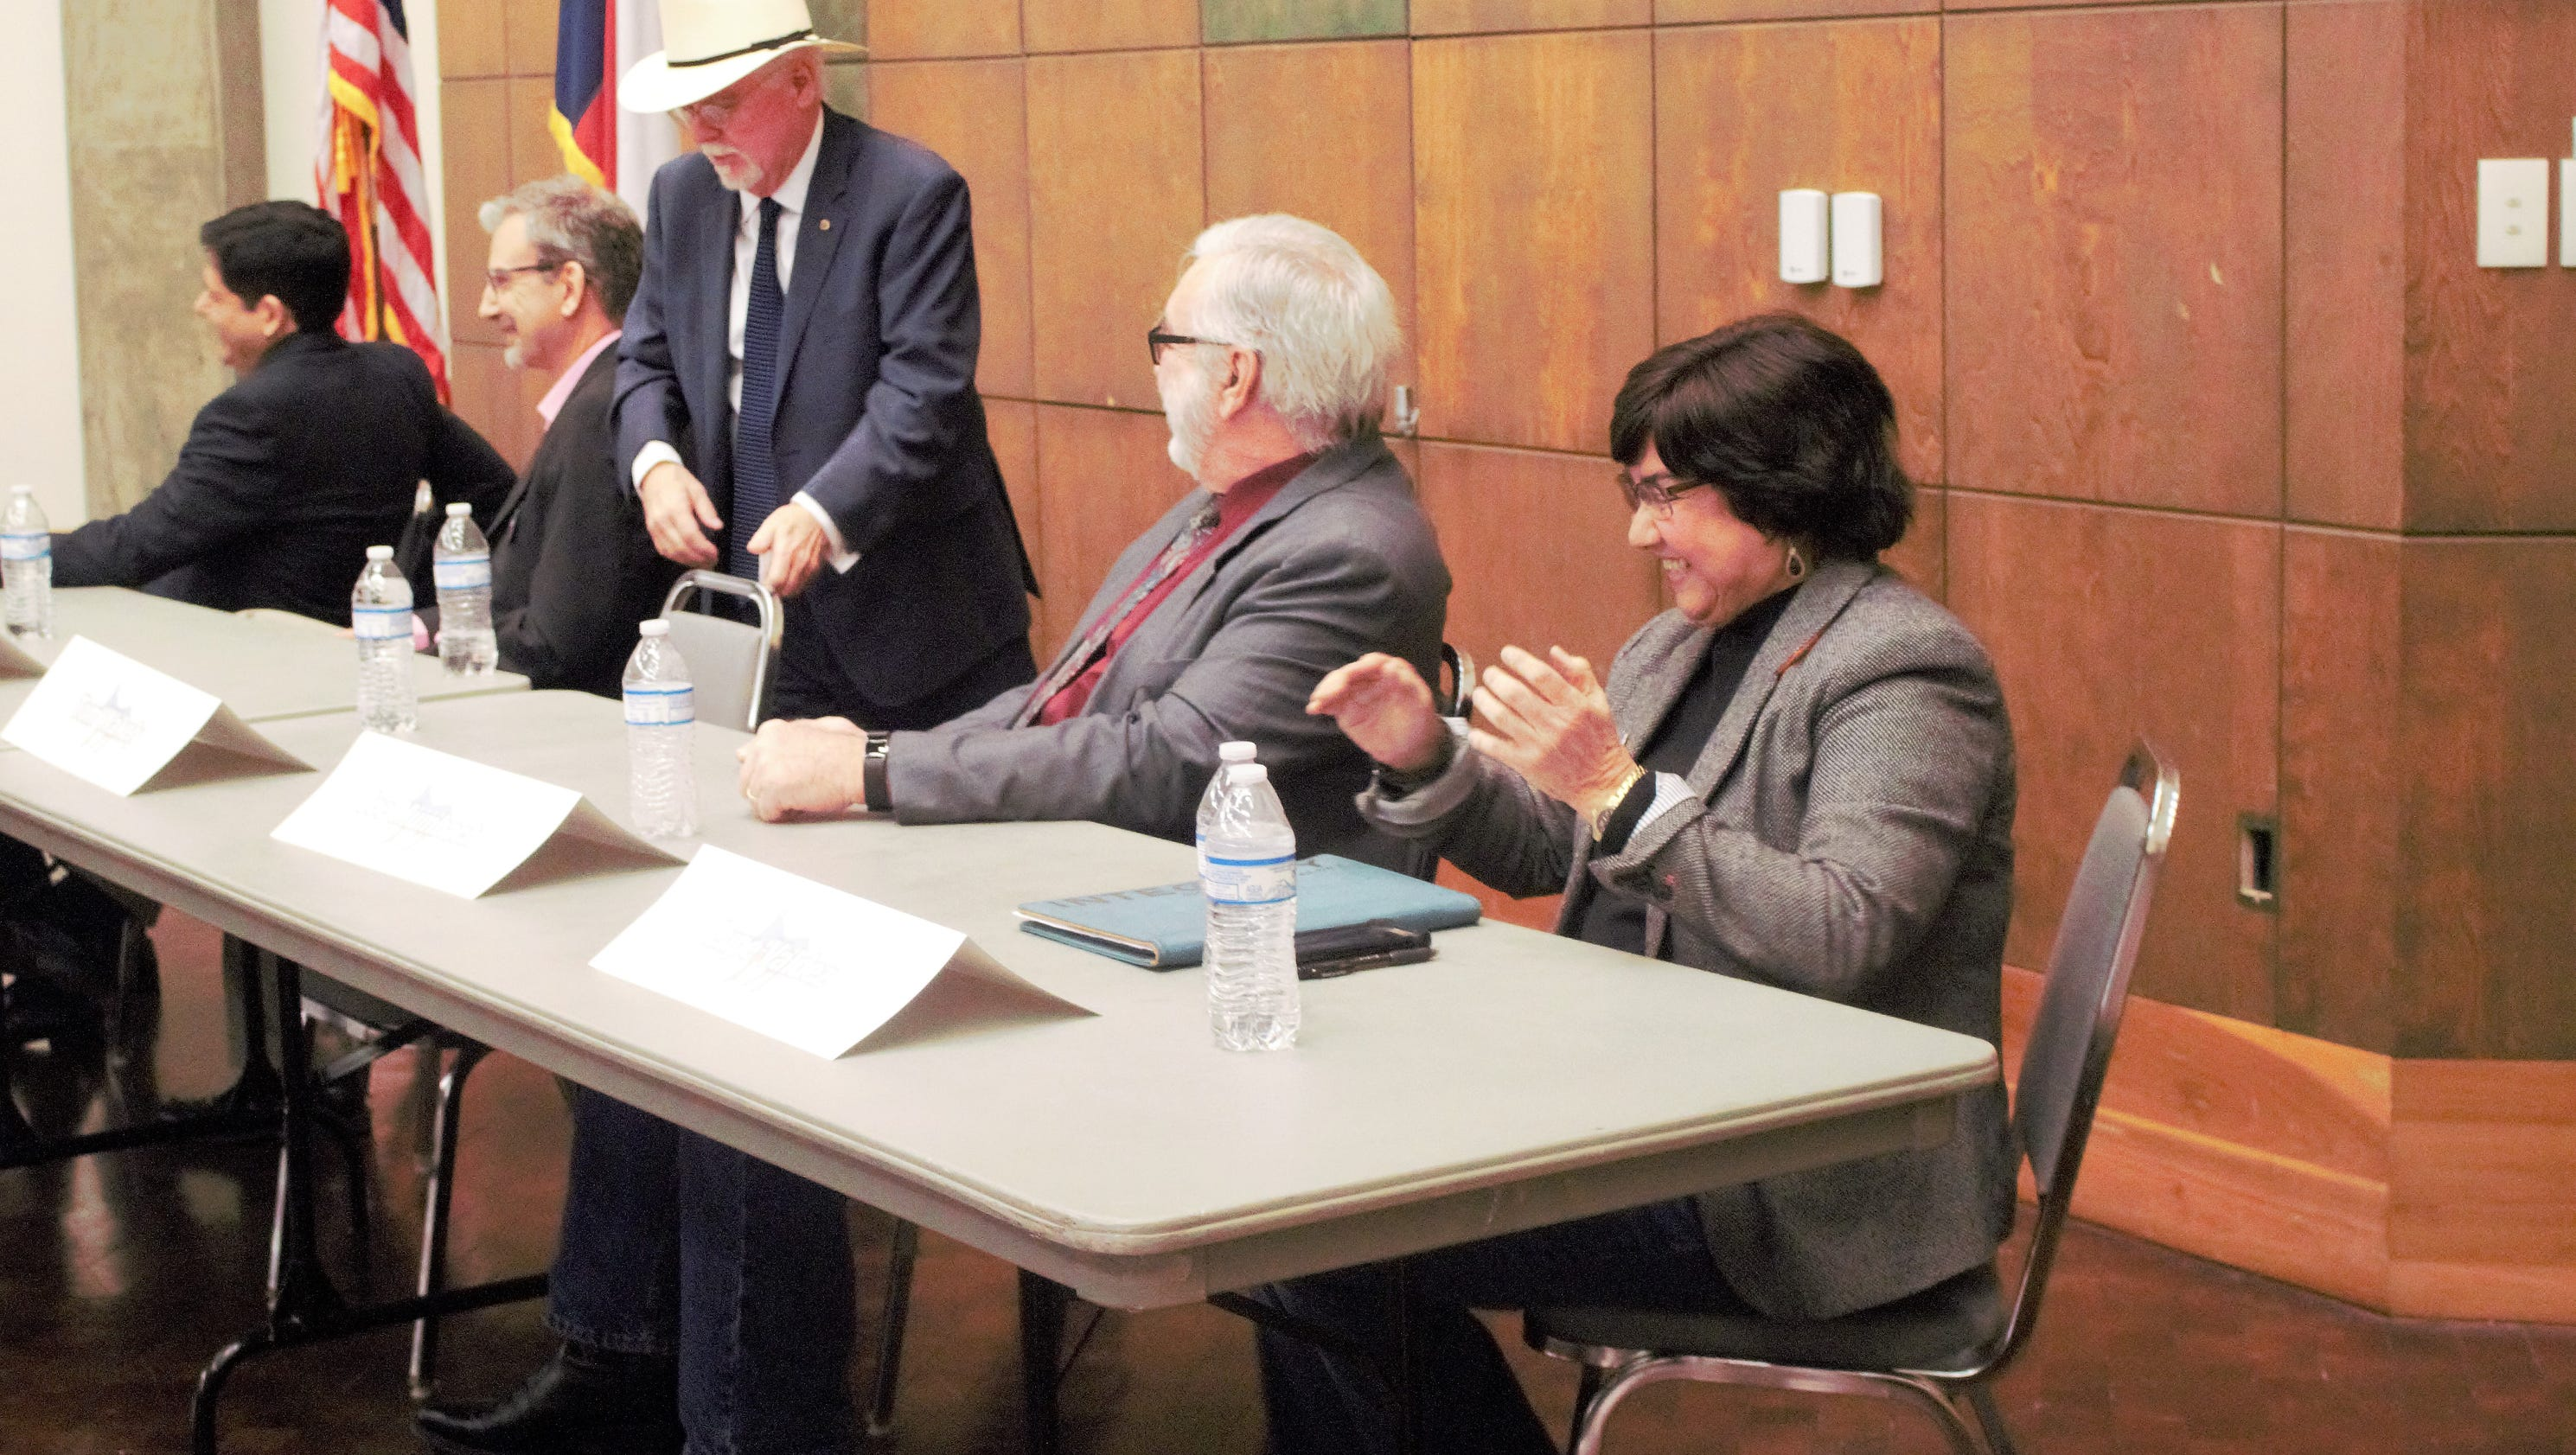 All Democratic hopefuls converge for governor candidate forum